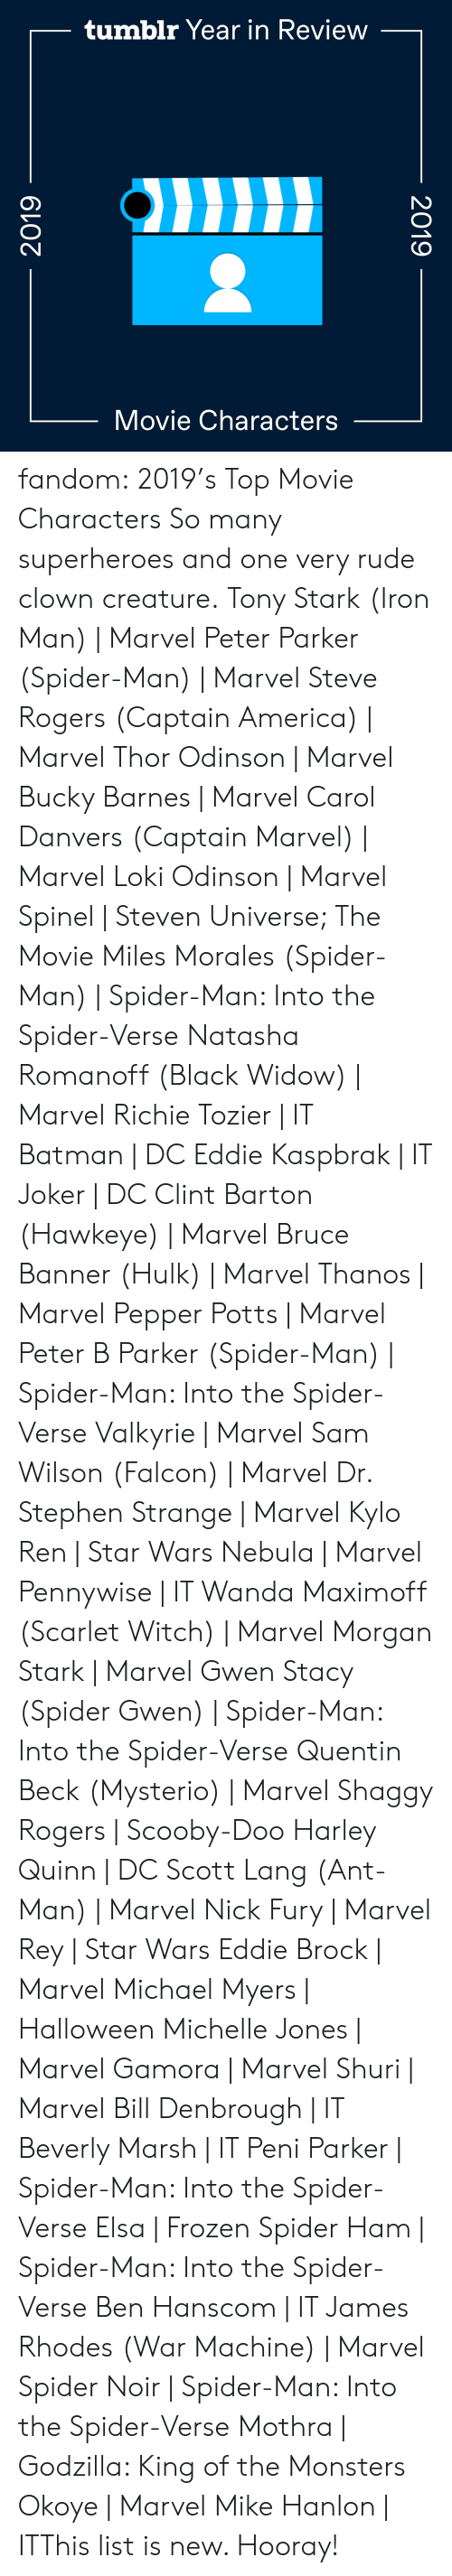 King Of: tumblr Year in Review  Movie Characters  2019  2019 fandom:  2019's Top Movie Characters  So many superheroes and one very rude clown creature.  Tony Stark (Iron Man) | Marvel  Peter Parker (Spider-Man) | Marvel  Steve Rogers (Captain America) | Marvel  Thor Odinson | Marvel  Bucky Barnes | Marvel  Carol Danvers (Captain Marvel) | Marvel  Loki Odinson | Marvel  Spinel | Steven Universe; The Movie  Miles Morales (Spider-Man) | Spider-Man: Into the Spider-Verse  Natasha Romanoff (Black Widow) | Marvel  Richie Tozier | IT  Batman | DC  Eddie Kaspbrak | IT  Joker | DC  Clint Barton (Hawkeye) | Marvel  Bruce Banner (Hulk) | Marvel  Thanos | Marvel  Pepper Potts | Marvel  Peter B Parker (Spider-Man) | Spider-Man: Into the Spider-Verse  Valkyrie | Marvel  Sam Wilson (Falcon) | Marvel  Dr. Stephen Strange | Marvel  Kylo Ren | Star Wars  Nebula | Marvel  Pennywise | IT  Wanda Maximoff (Scarlet Witch) | Marvel  Morgan Stark | Marvel  Gwen Stacy (Spider Gwen) | Spider-Man: Into the Spider-Verse  Quentin Beck (Mysterio) | Marvel  Shaggy Rogers | Scooby-Doo  Harley Quinn | DC  Scott Lang (Ant-Man) | Marvel  Nick Fury | Marvel  Rey | Star Wars  Eddie Brock | Marvel  Michael Myers | Halloween  Michelle Jones | Marvel  Gamora | Marvel  Shuri | Marvel  Bill Denbrough | IT  Beverly Marsh | IT  Peni Parker | Spider-Man: Into the Spider-Verse  Elsa | Frozen  Spider Ham | Spider-Man: Into the Spider-Verse  Ben Hanscom | IT  James Rhodes (War Machine) | Marvel  Spider Noir | Spider-Man: Into the Spider-Verse  Mothra | Godzilla: King of the Monsters  Okoye | Marvel Mike Hanlon | ITThis list is new. Hooray!